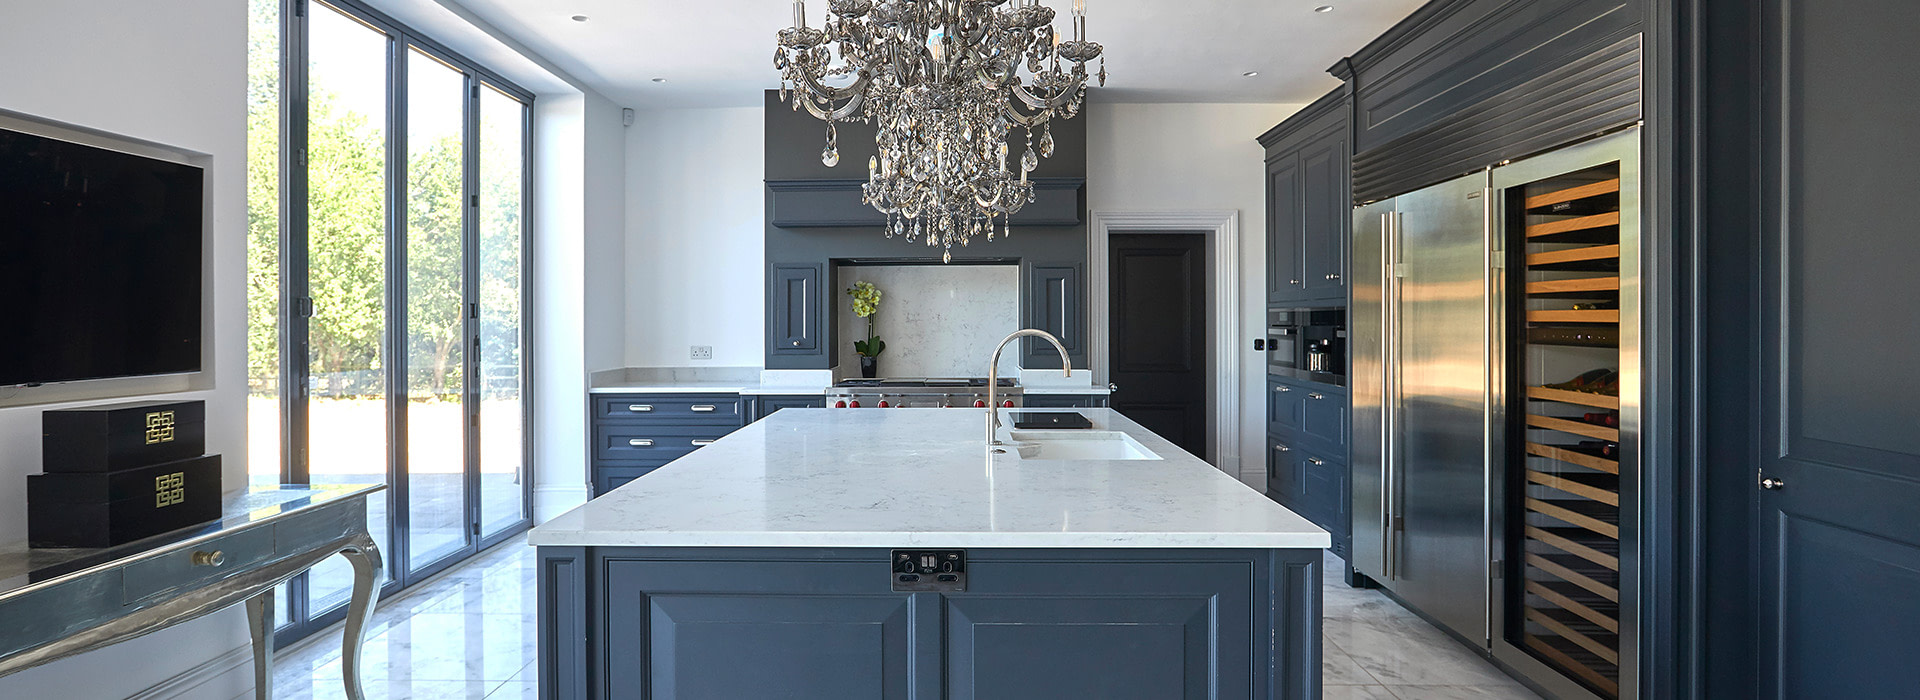 Marble kitchen with chandelier